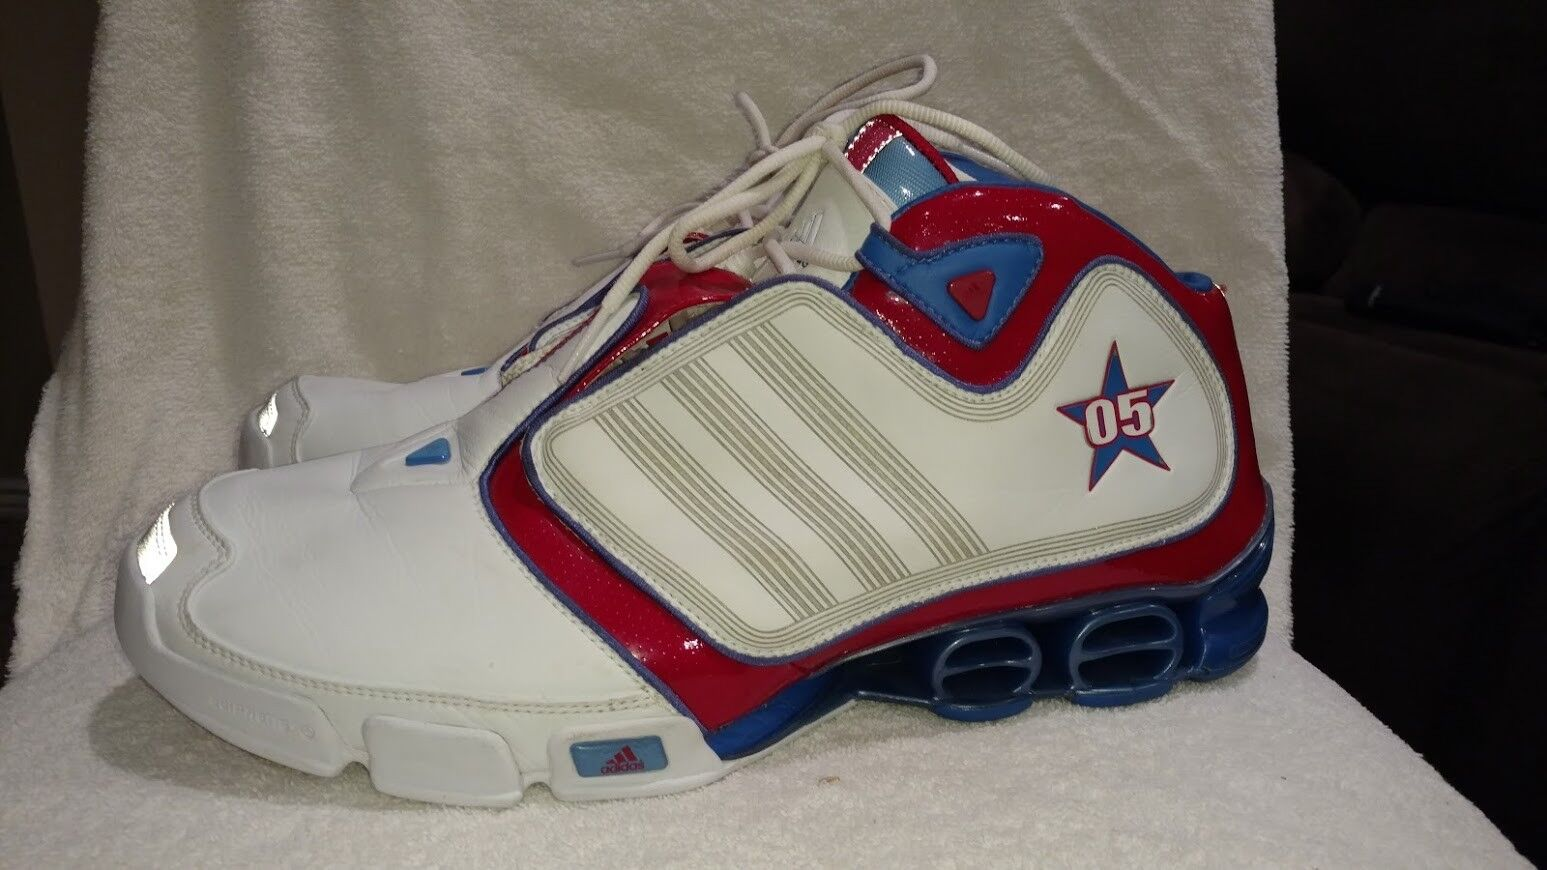 Vintage Rare Adidas High Top Leather Basketball Sneakers shoes Size 15